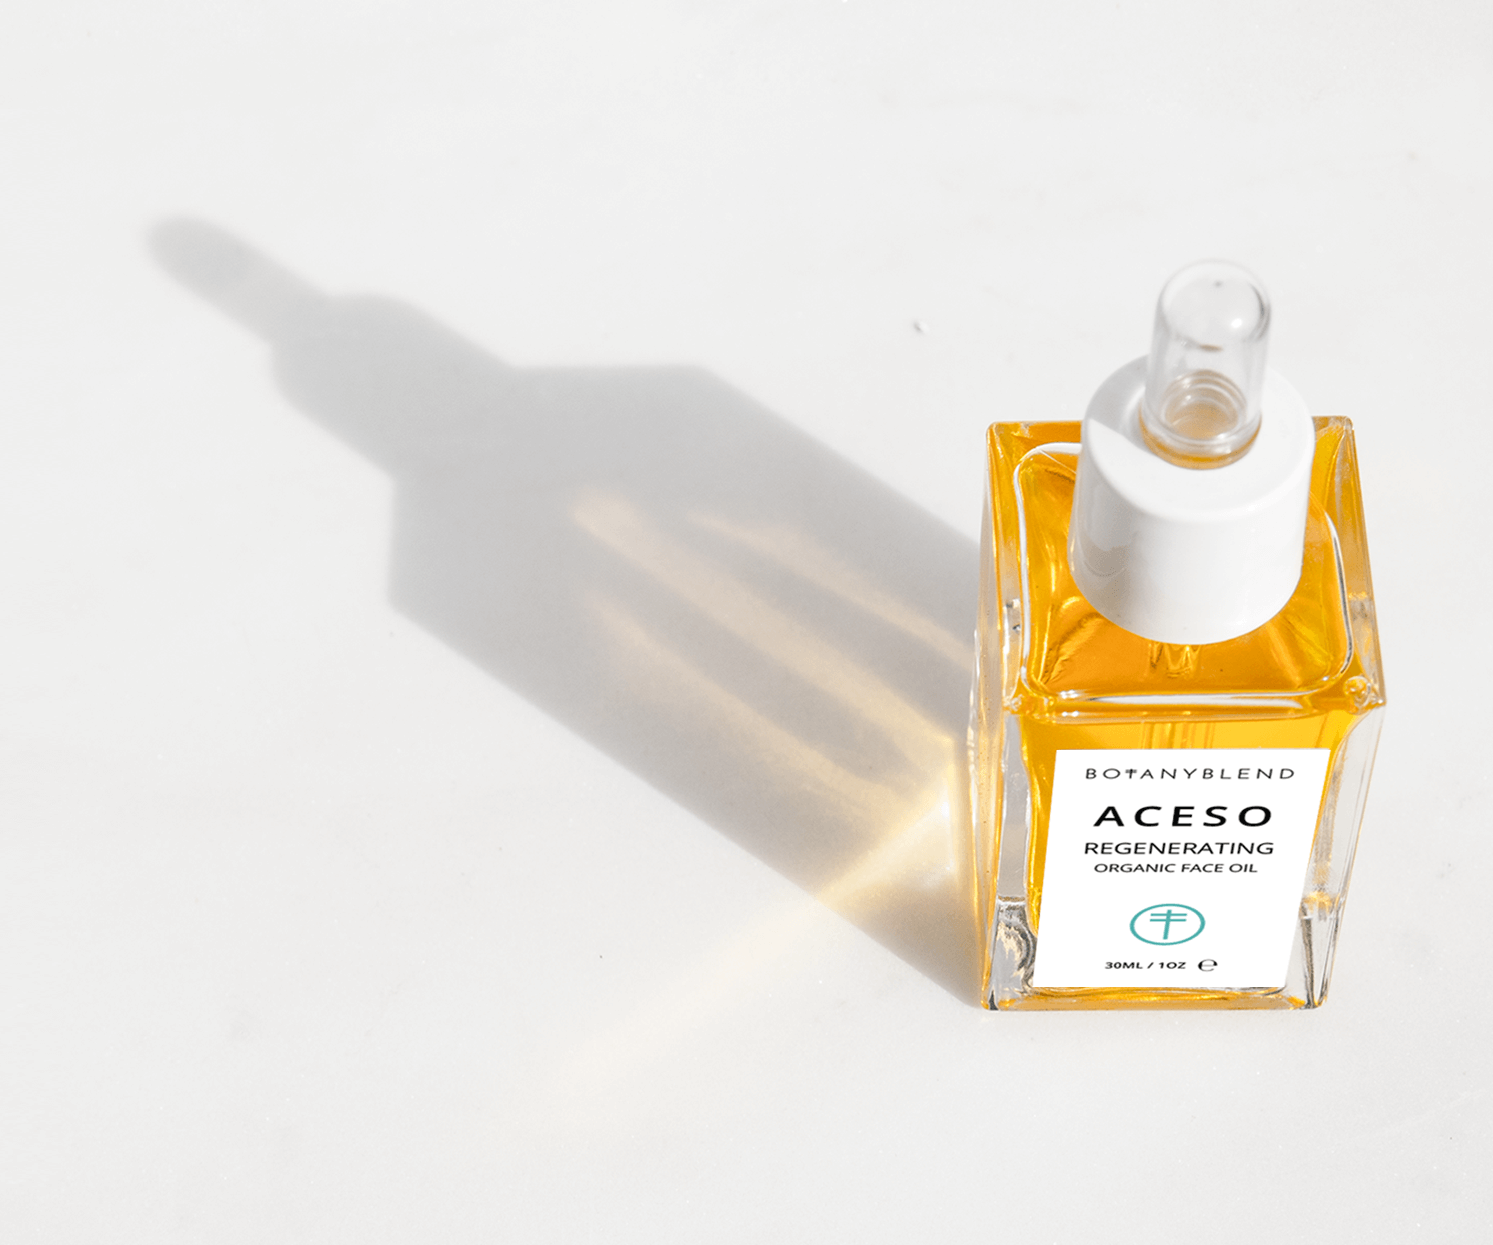 aceso organic face oil header